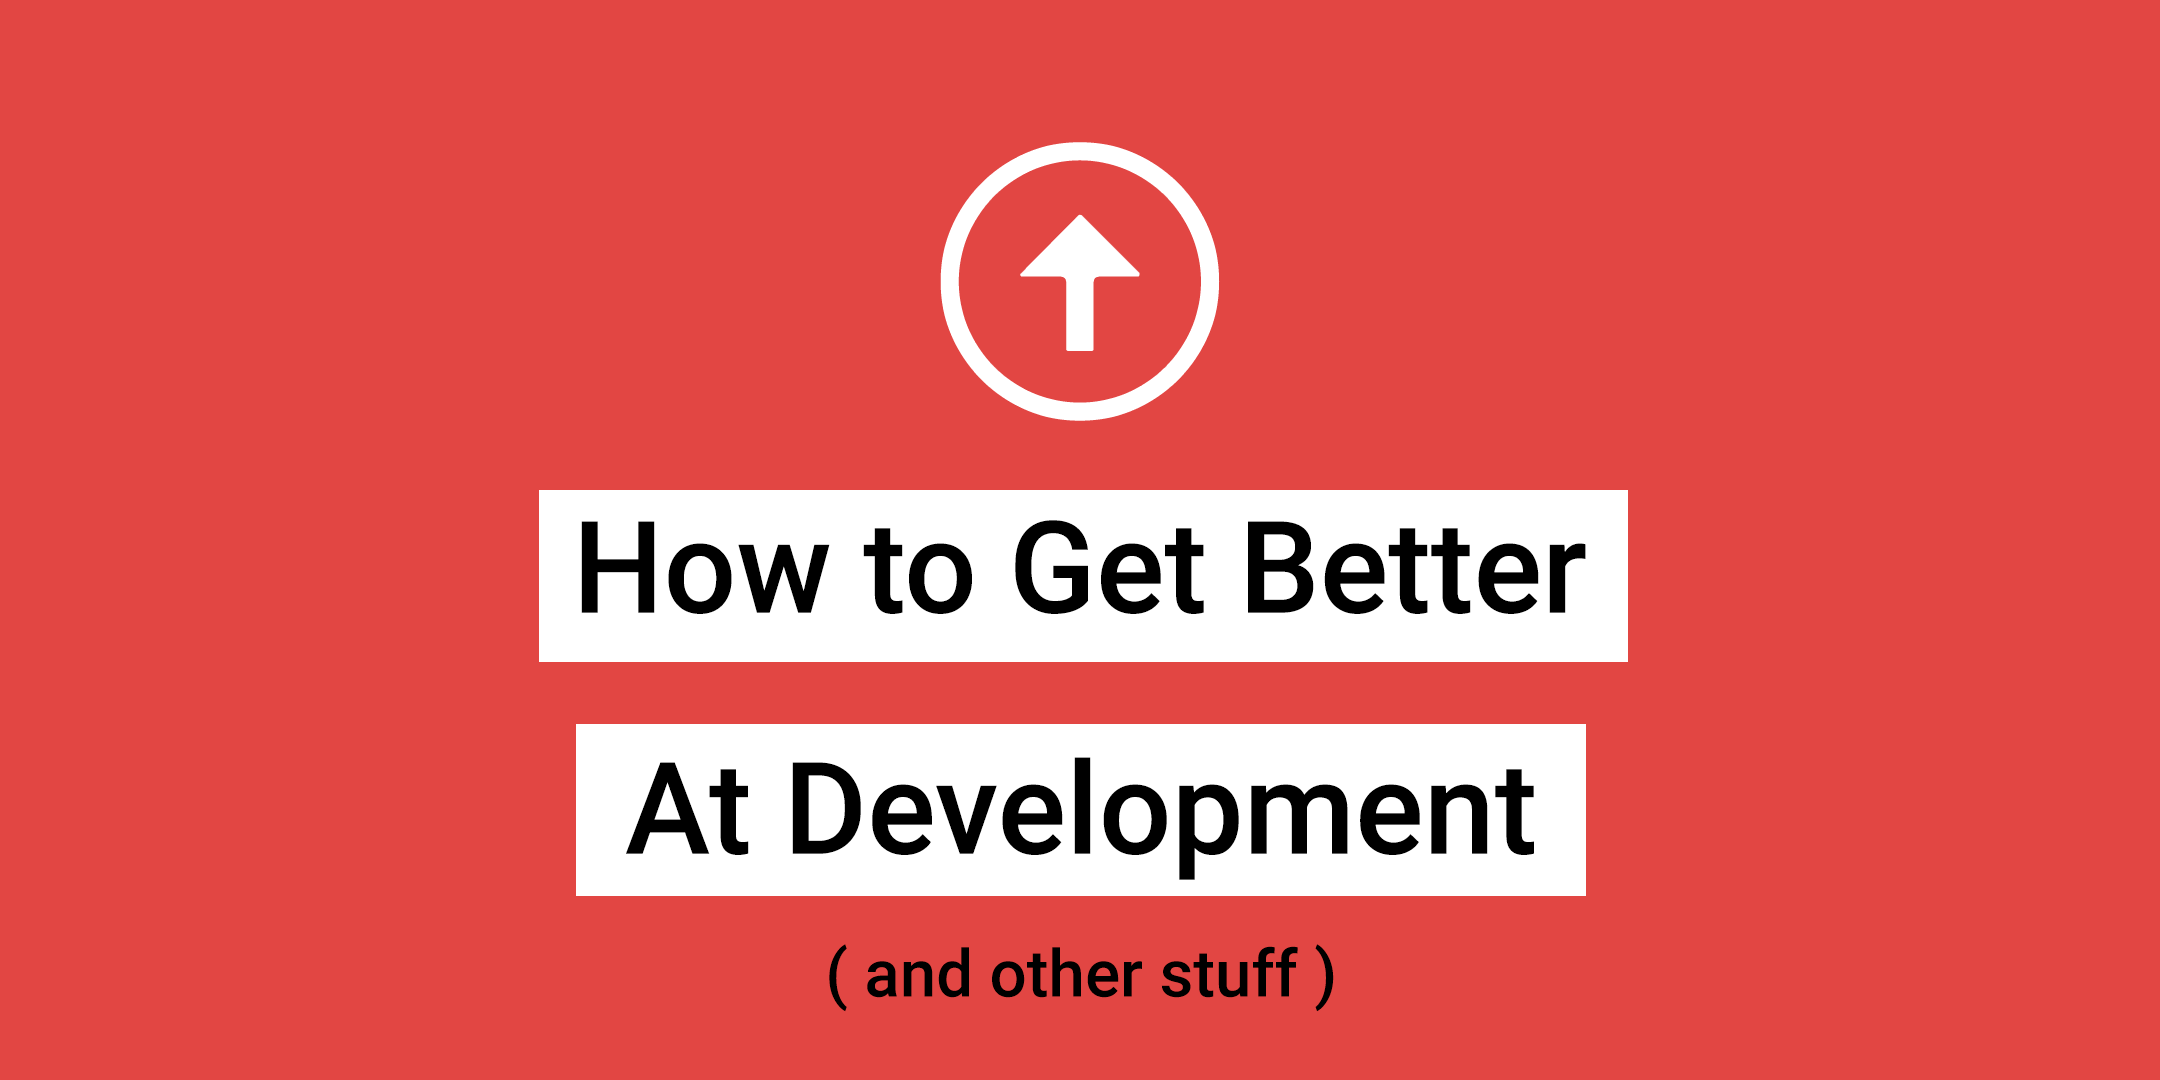 How to Get Better at Development